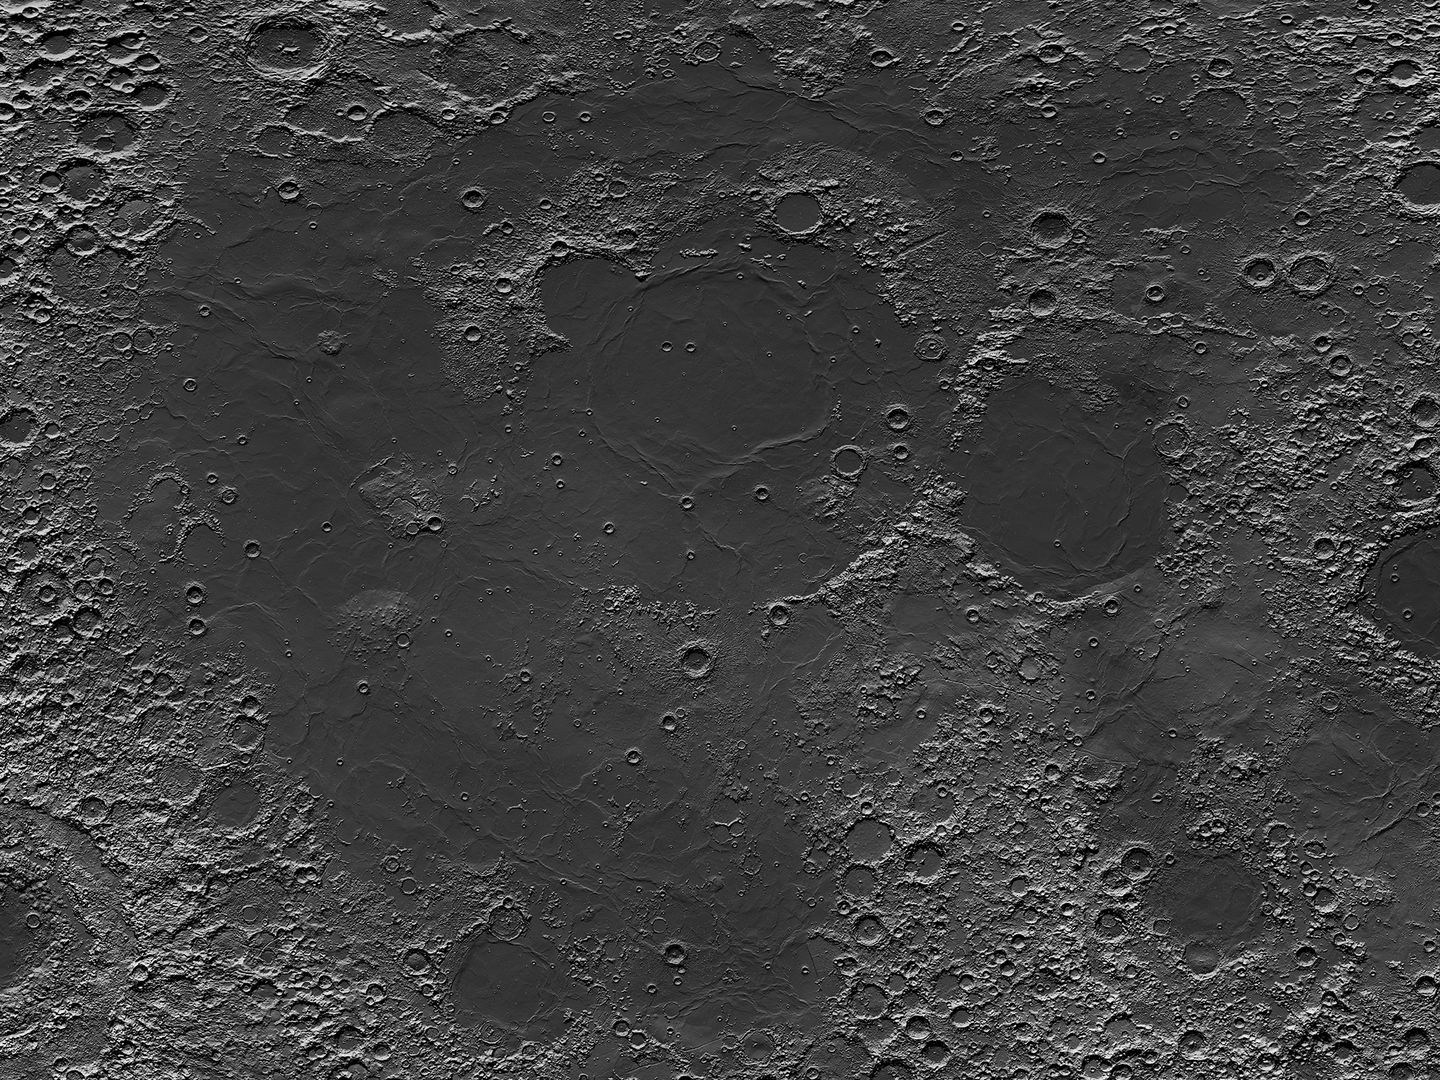 Moon Map Detail